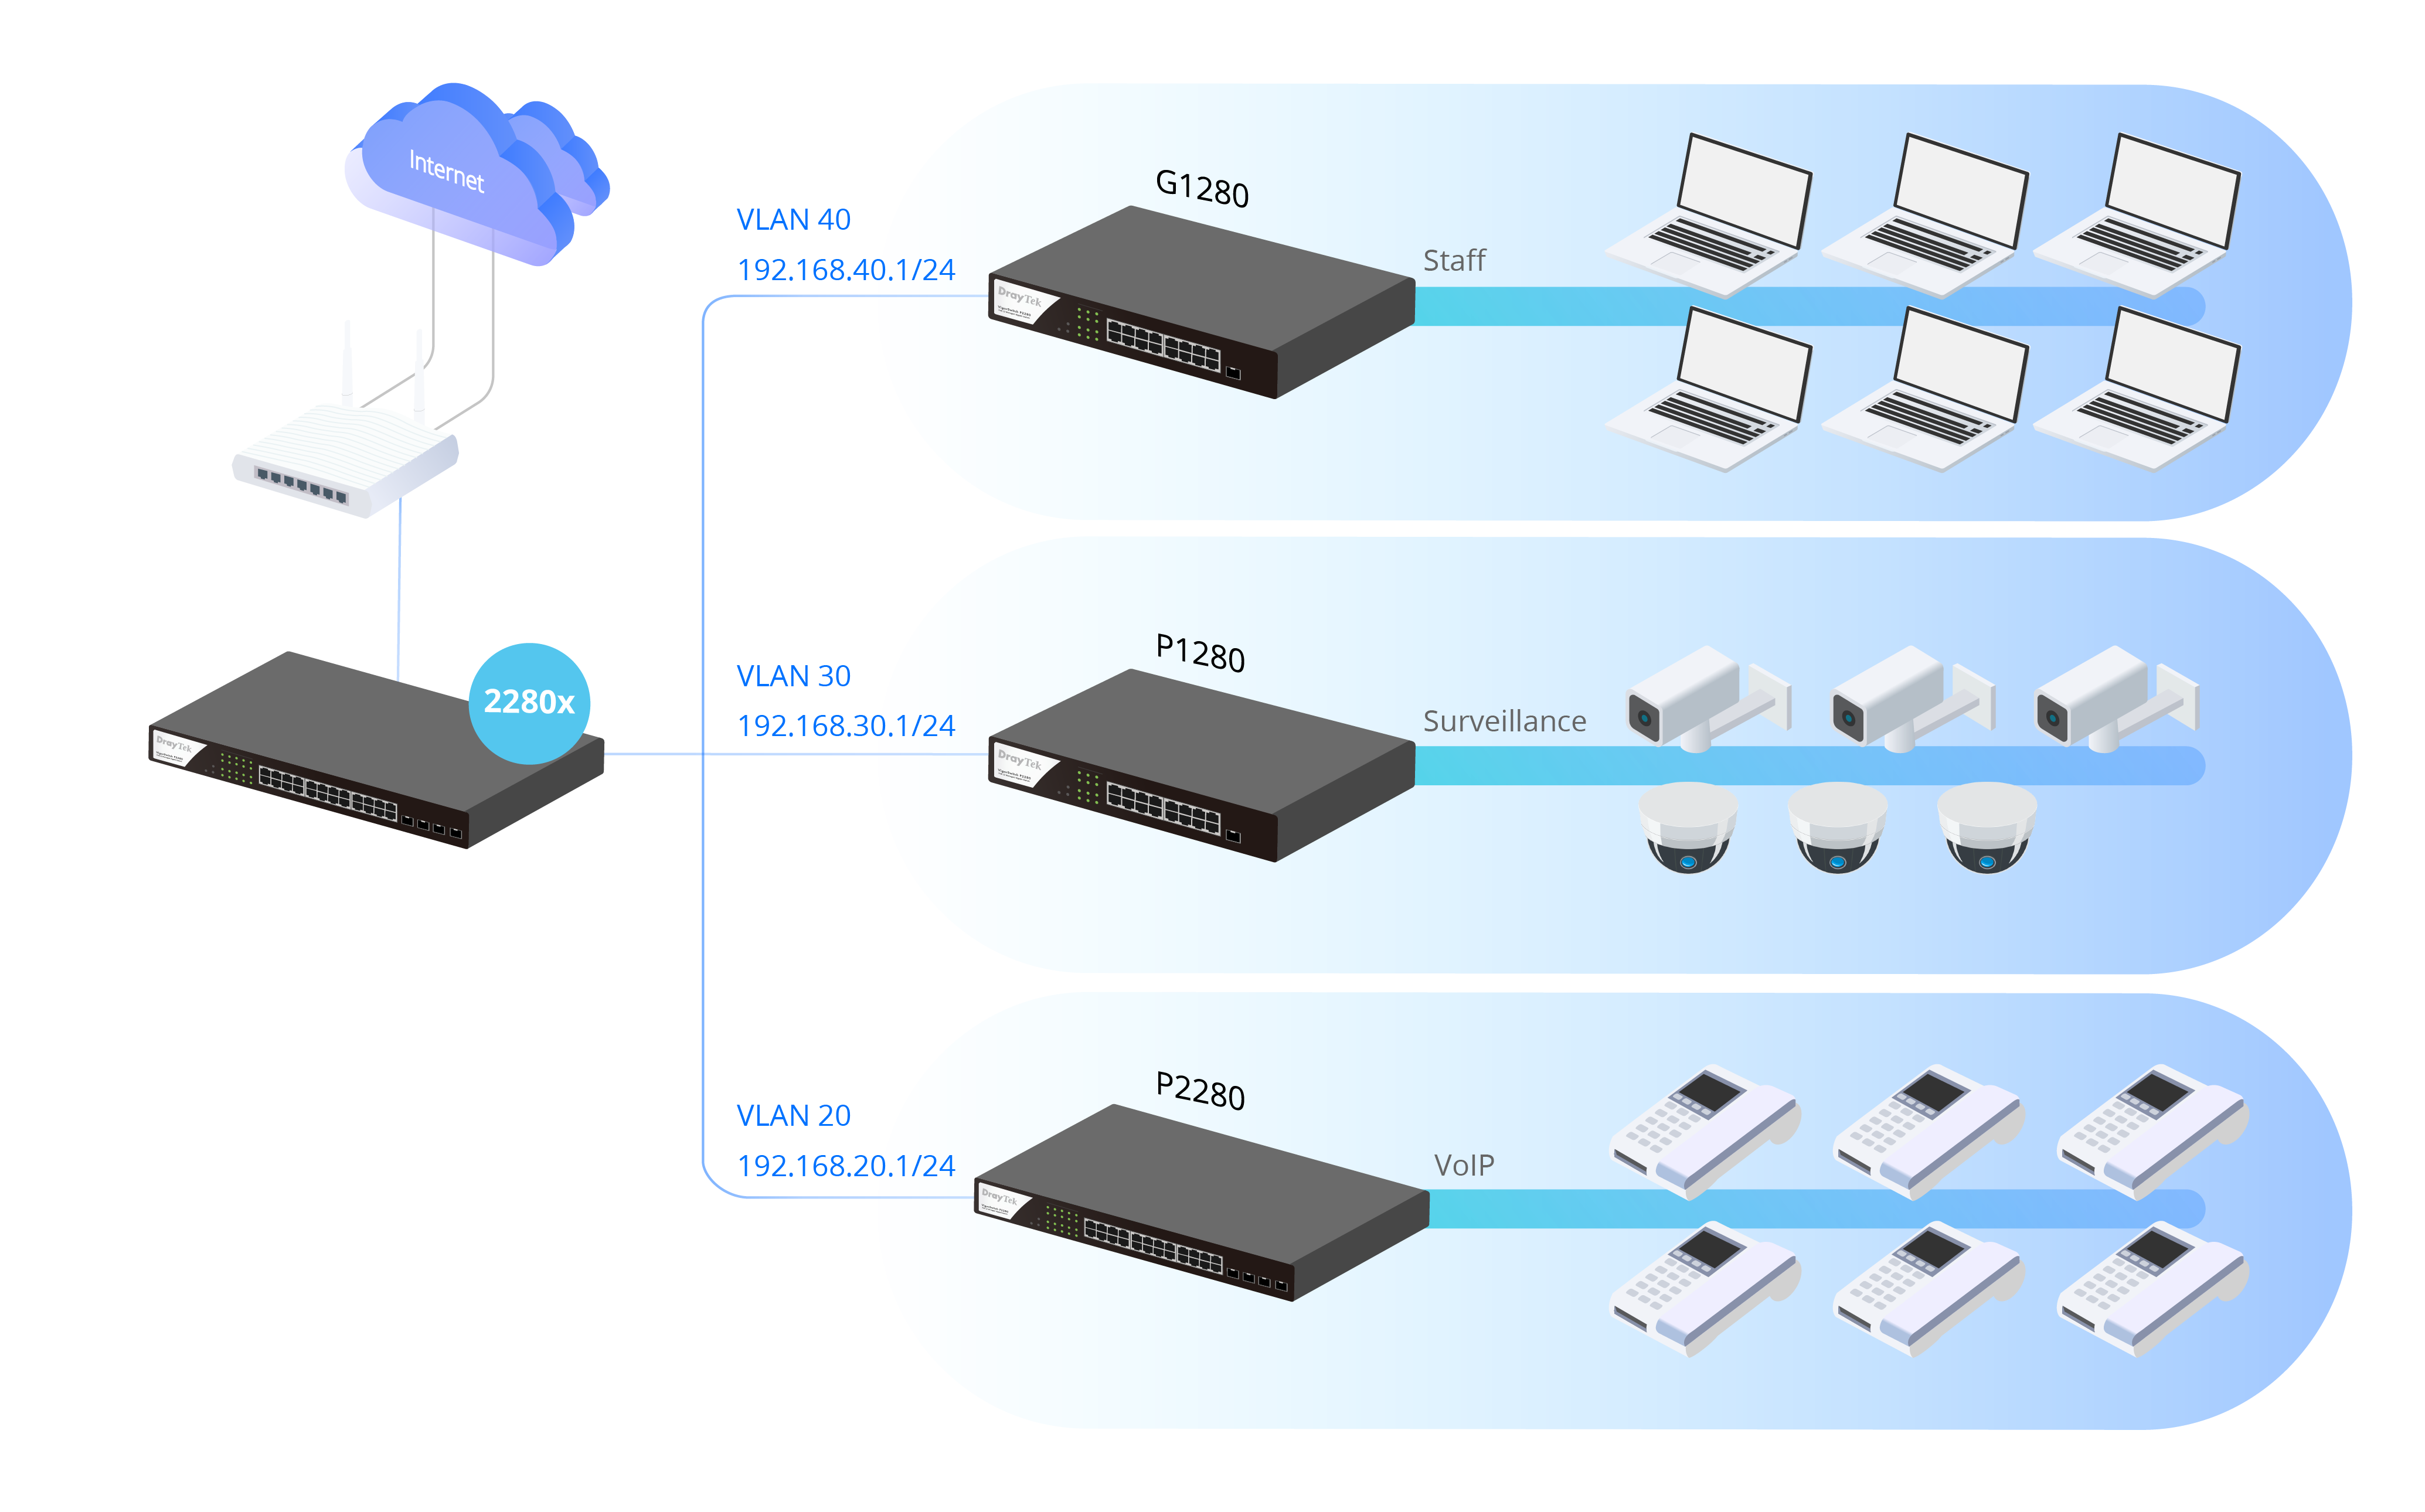 switch2280x_DHCP Server.png